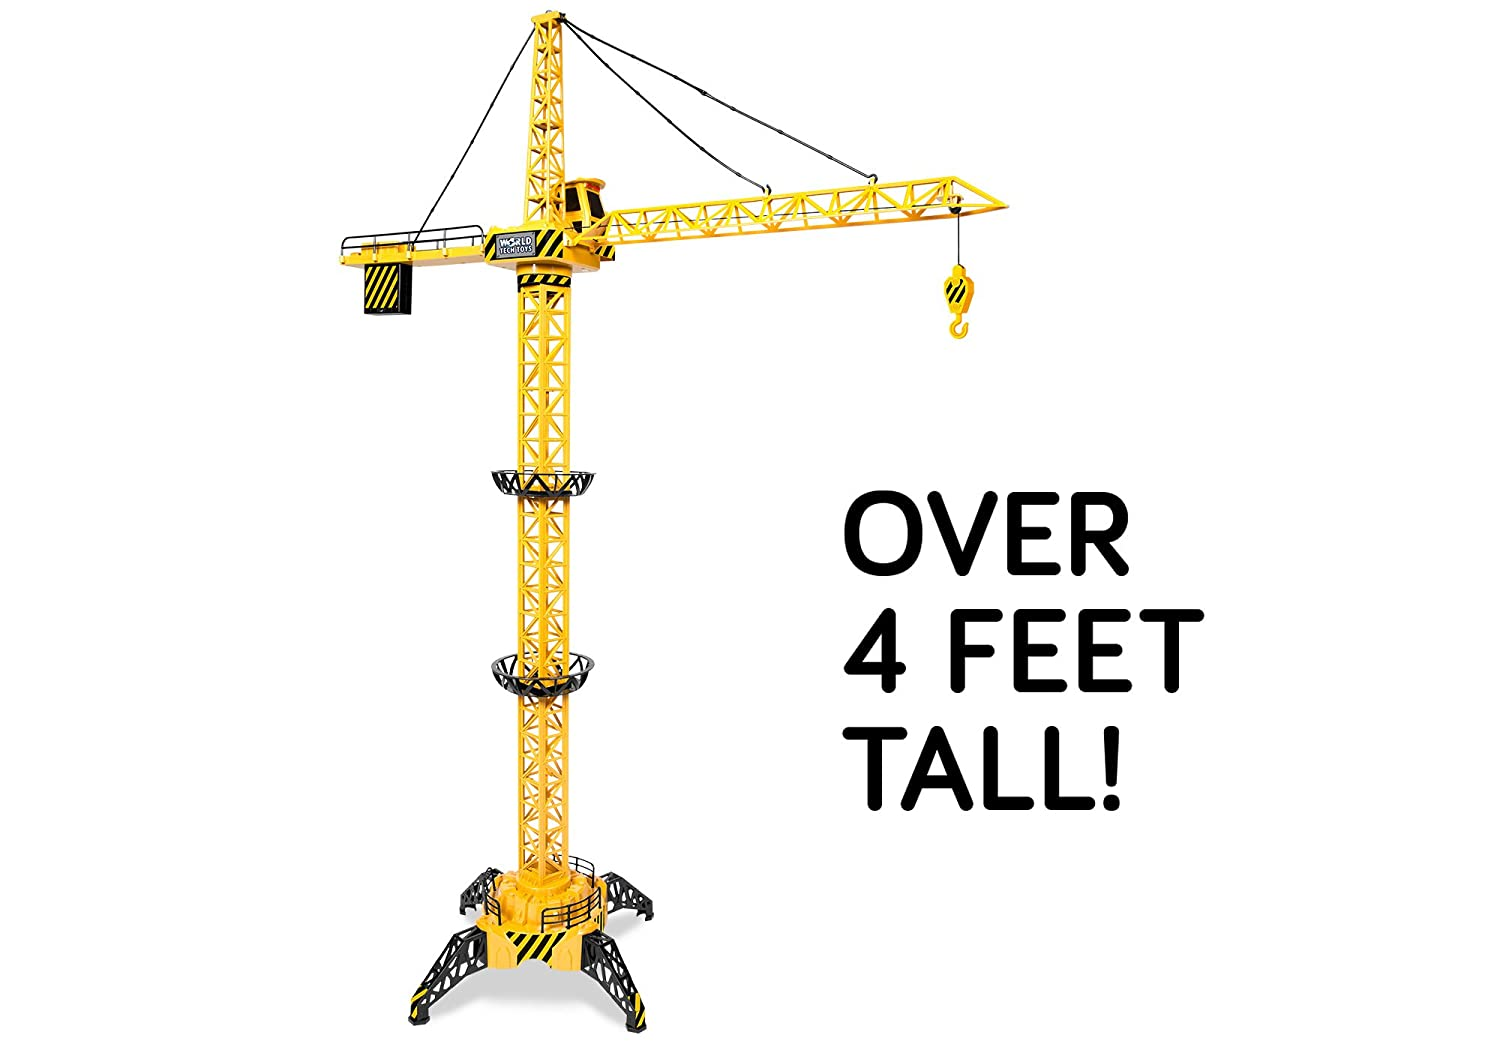 World Tech Toys Big Kid's Construction 4FT Motorized RC Crane 33079